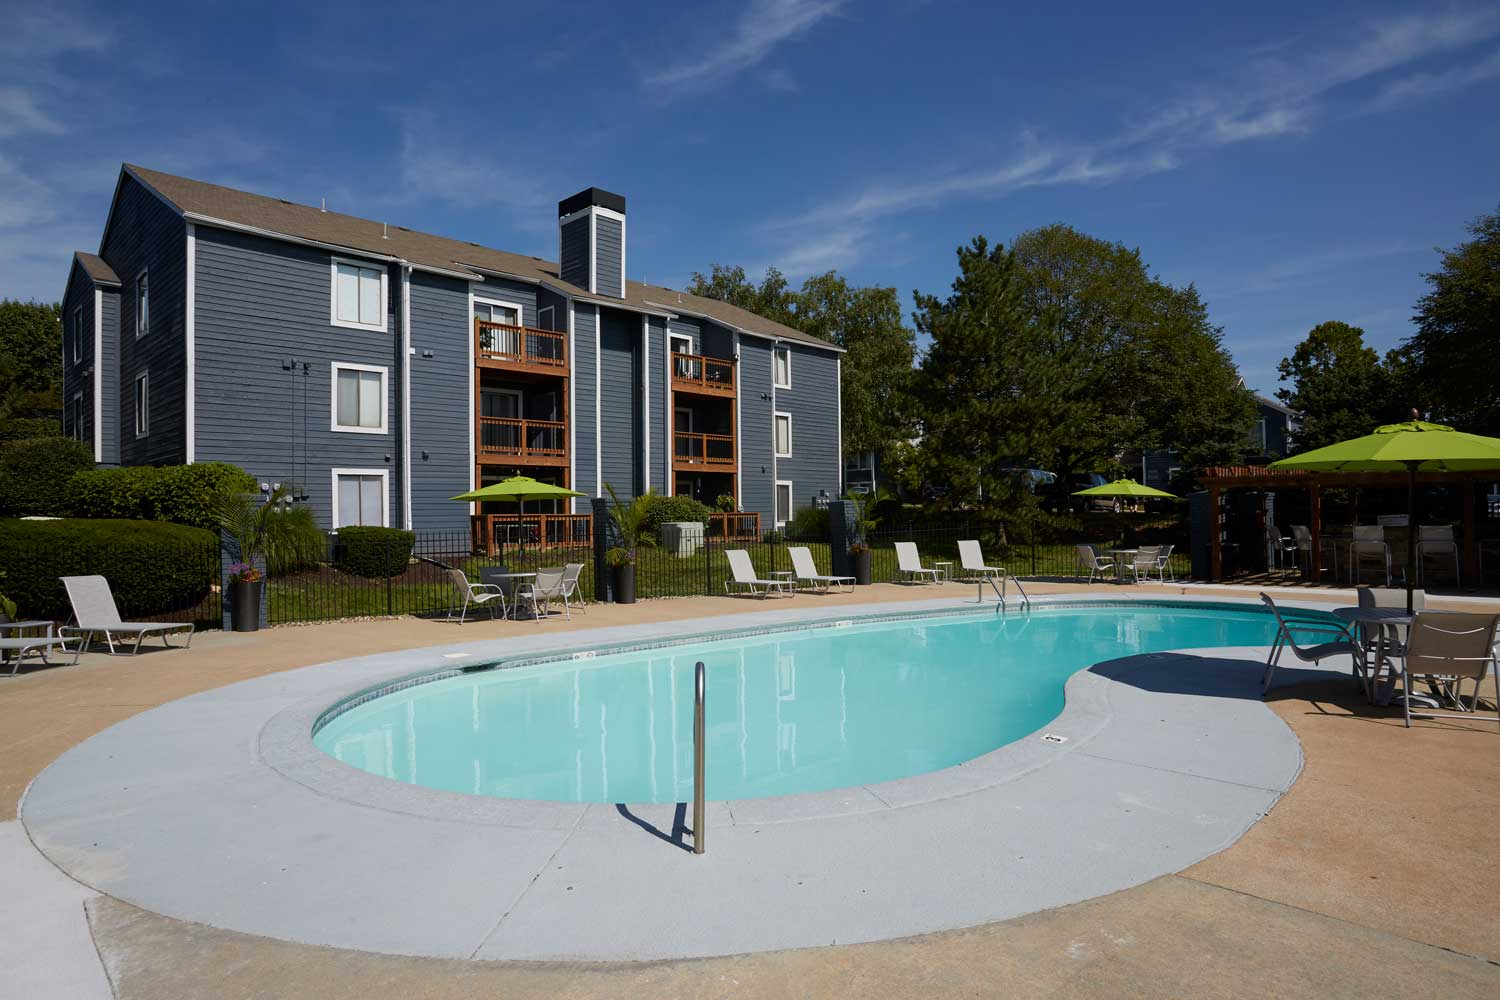 Outdoor Swimming Pool at Perry 81 Apartments in Overland Park, Kansas